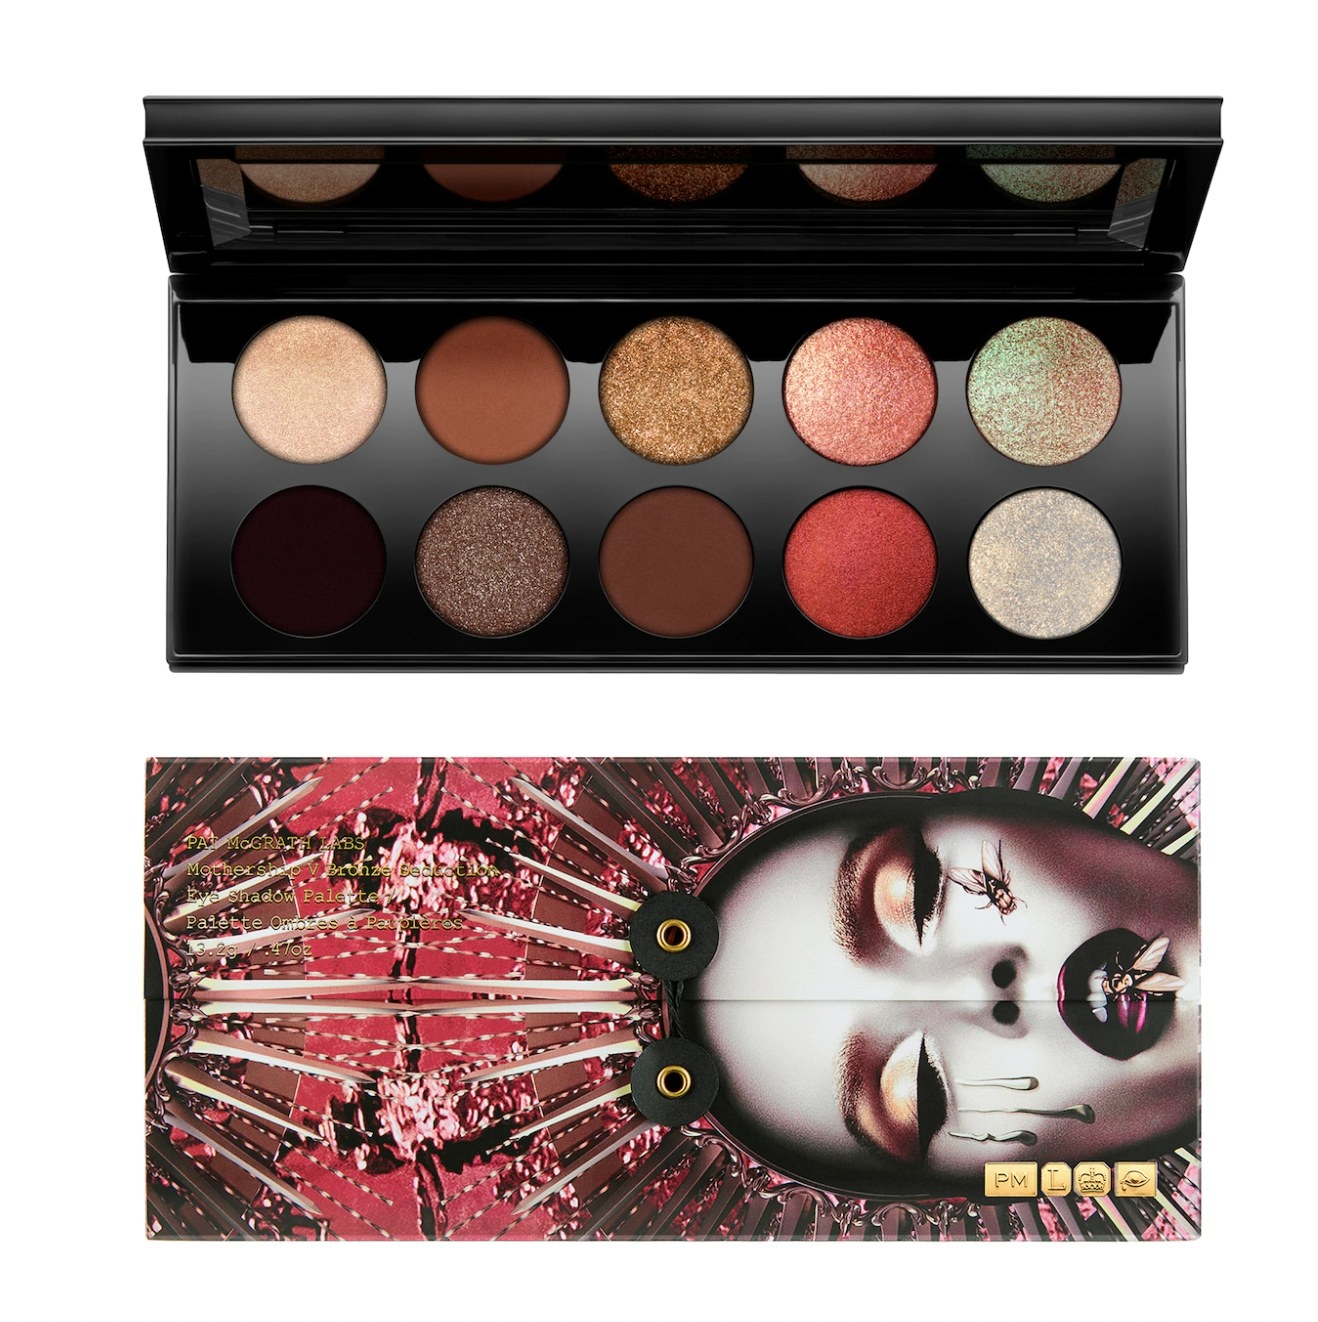 An eyeshadow palette with shimmer and matte shades.